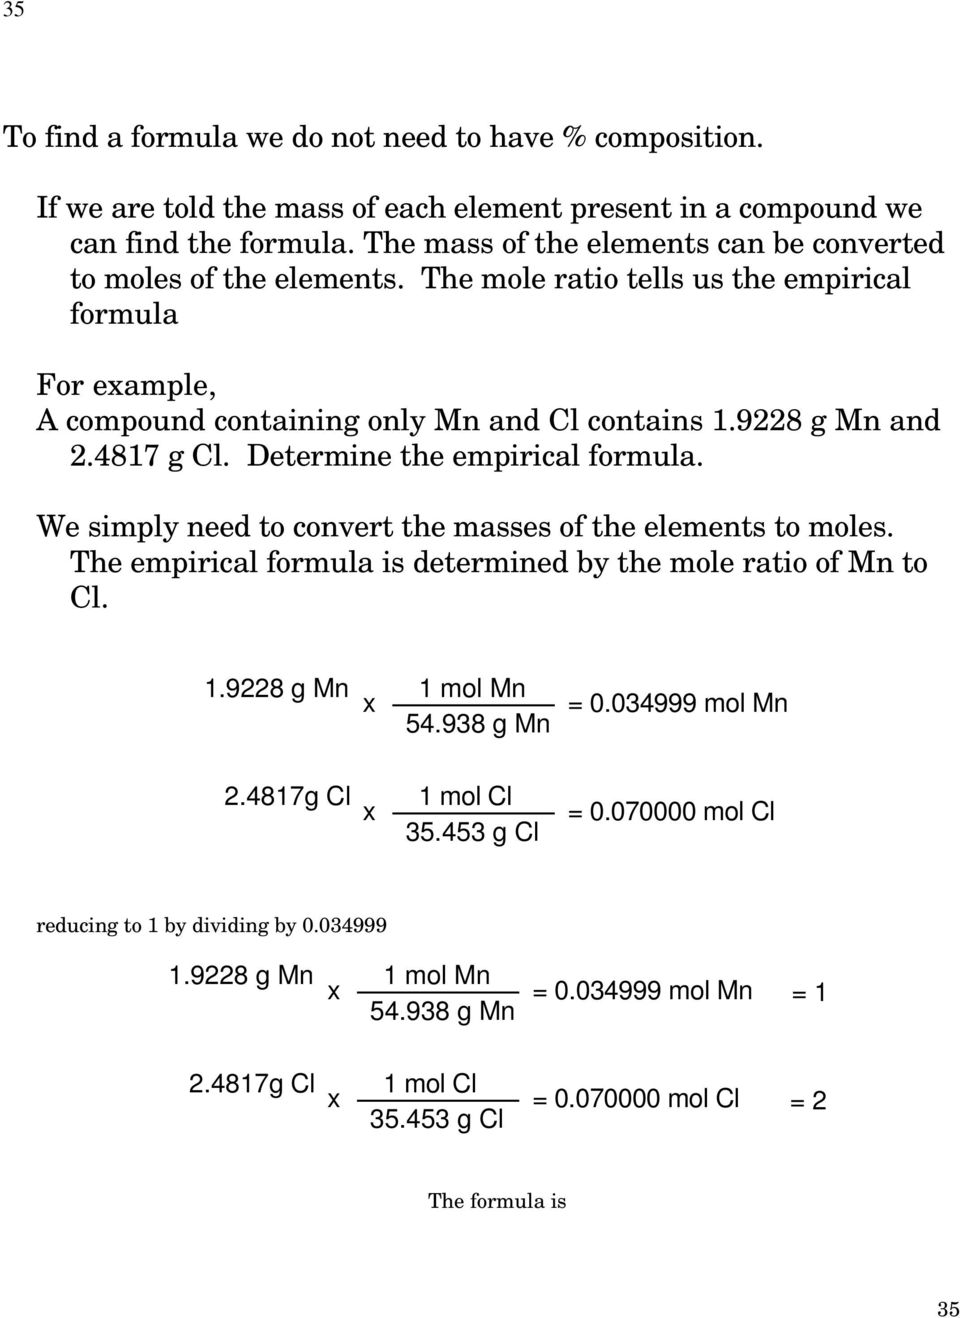 4817 g Cl. Determine the empirical formula. We simply need to convert the masses of the elements to moles. The empirical formula is determined by the mole ratio of Mn to Cl. 1.